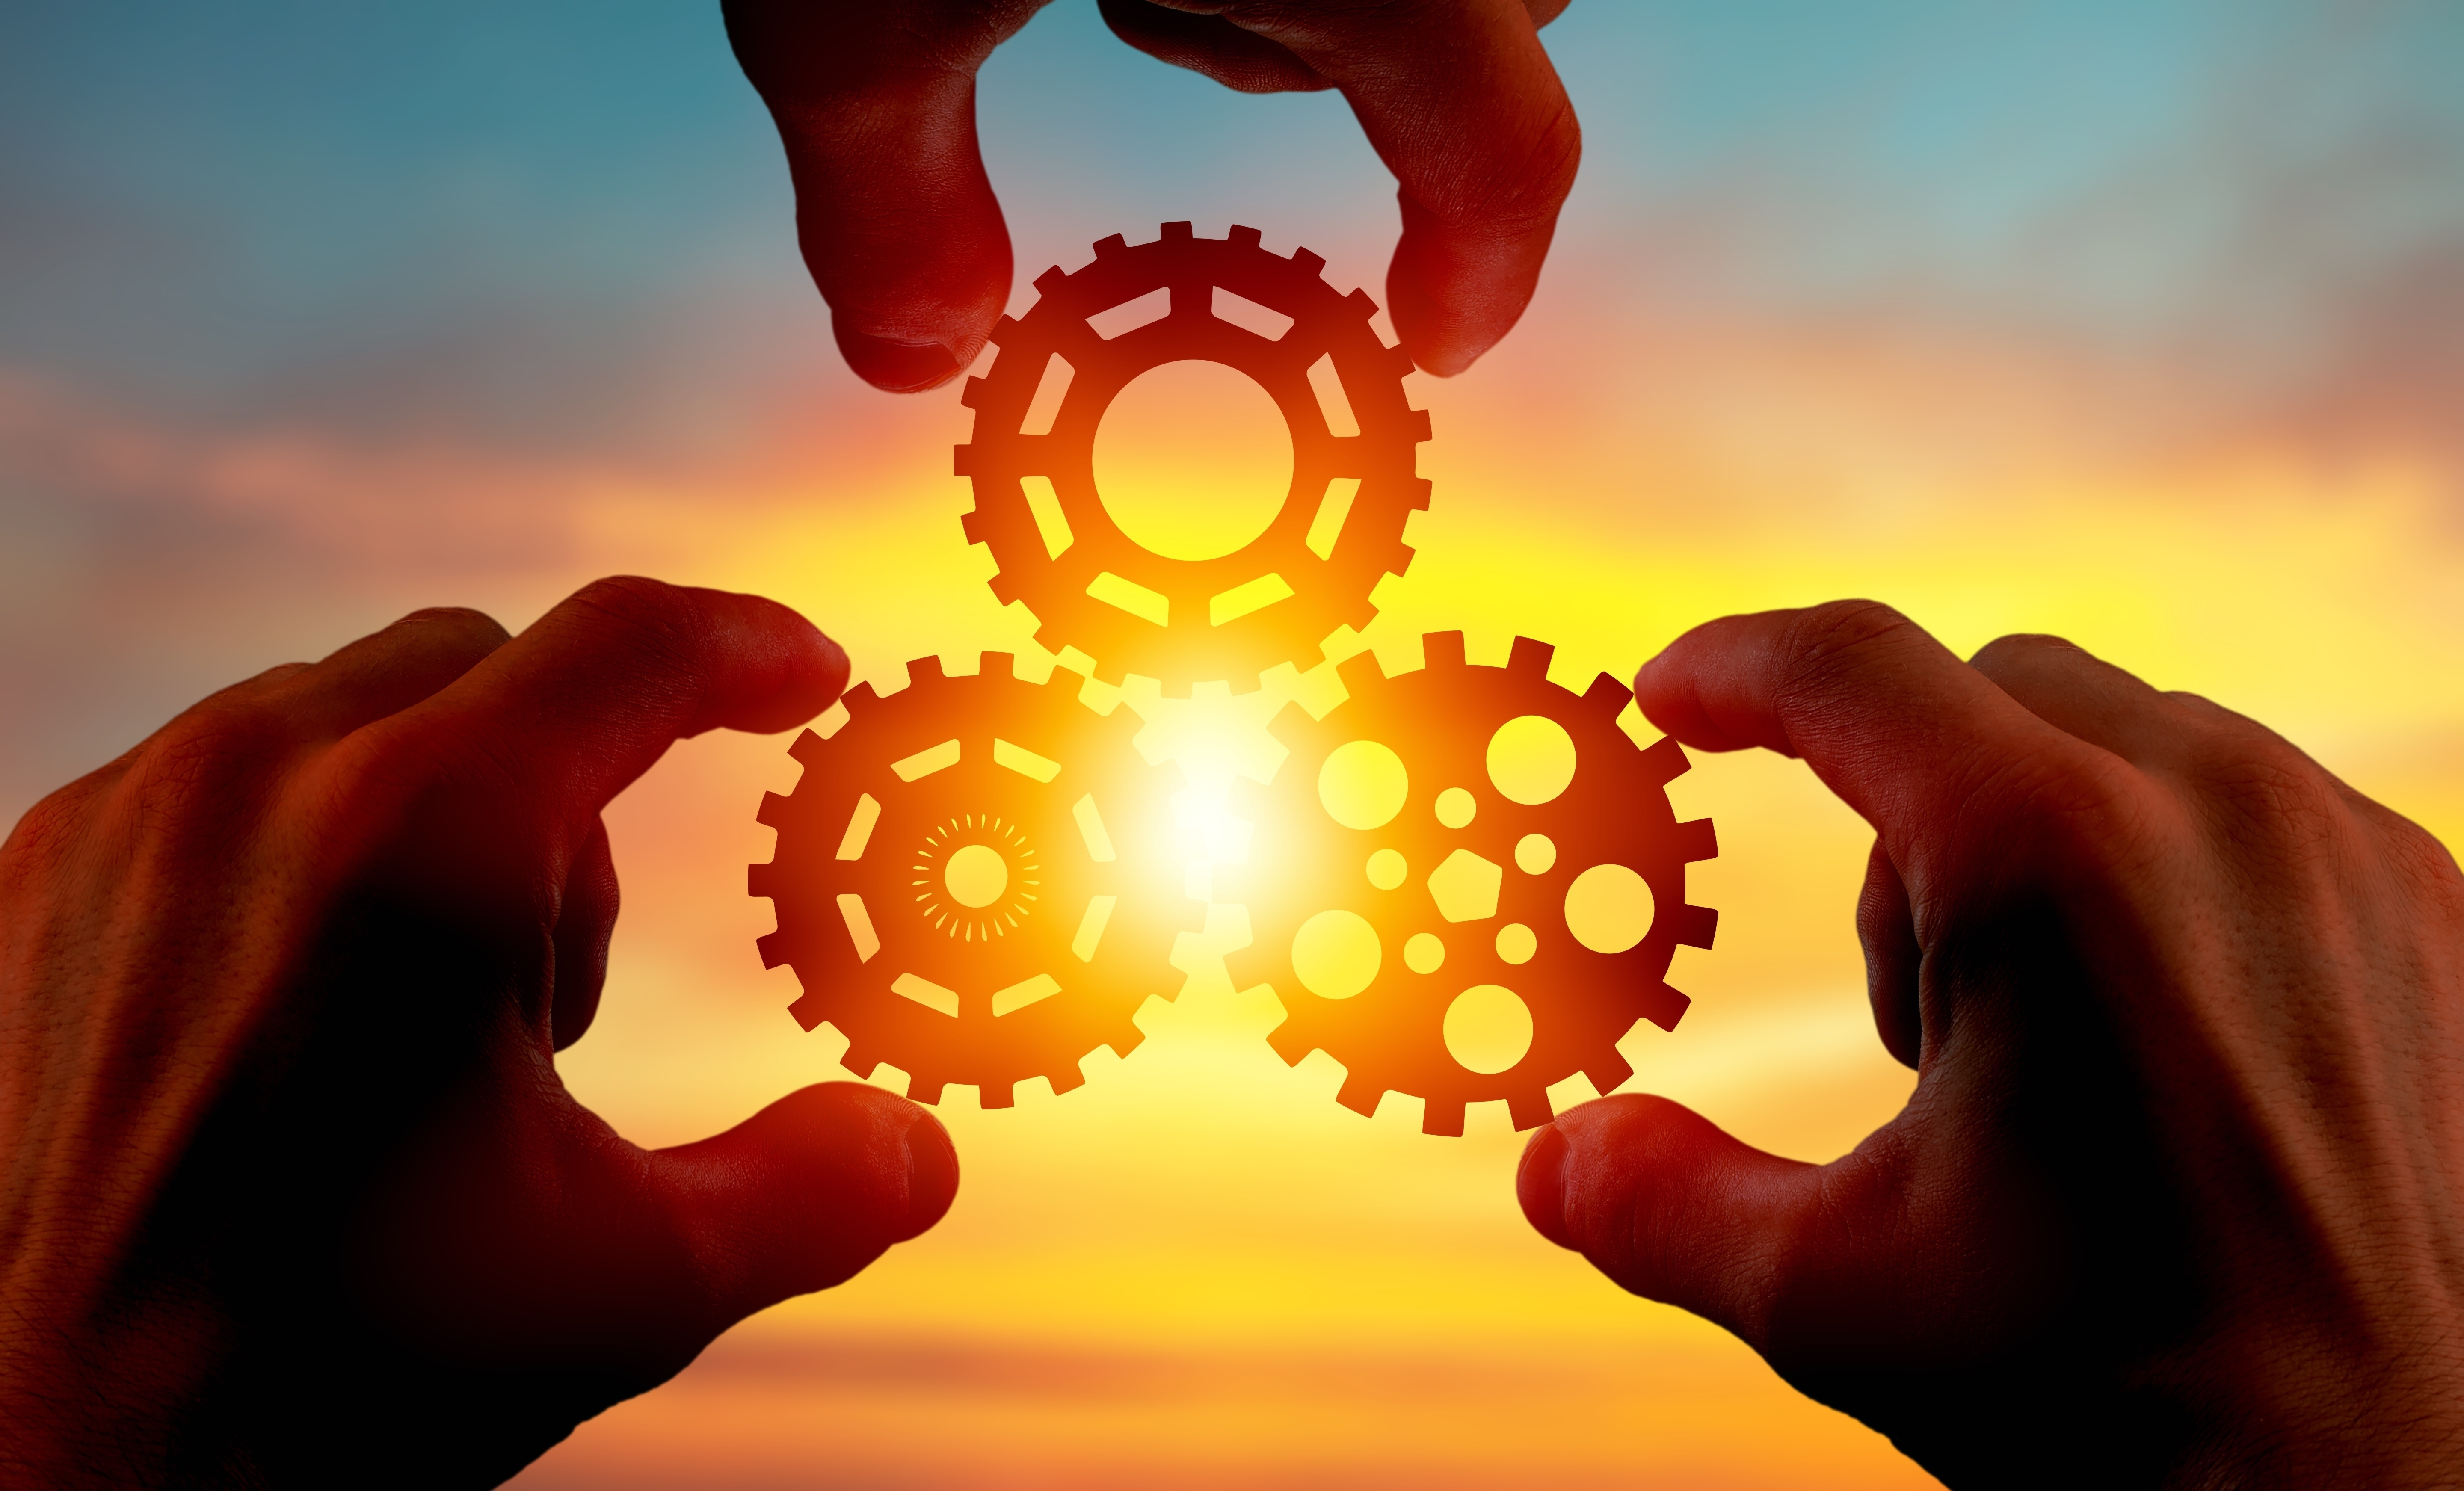 gears turning together with a sunset in the background